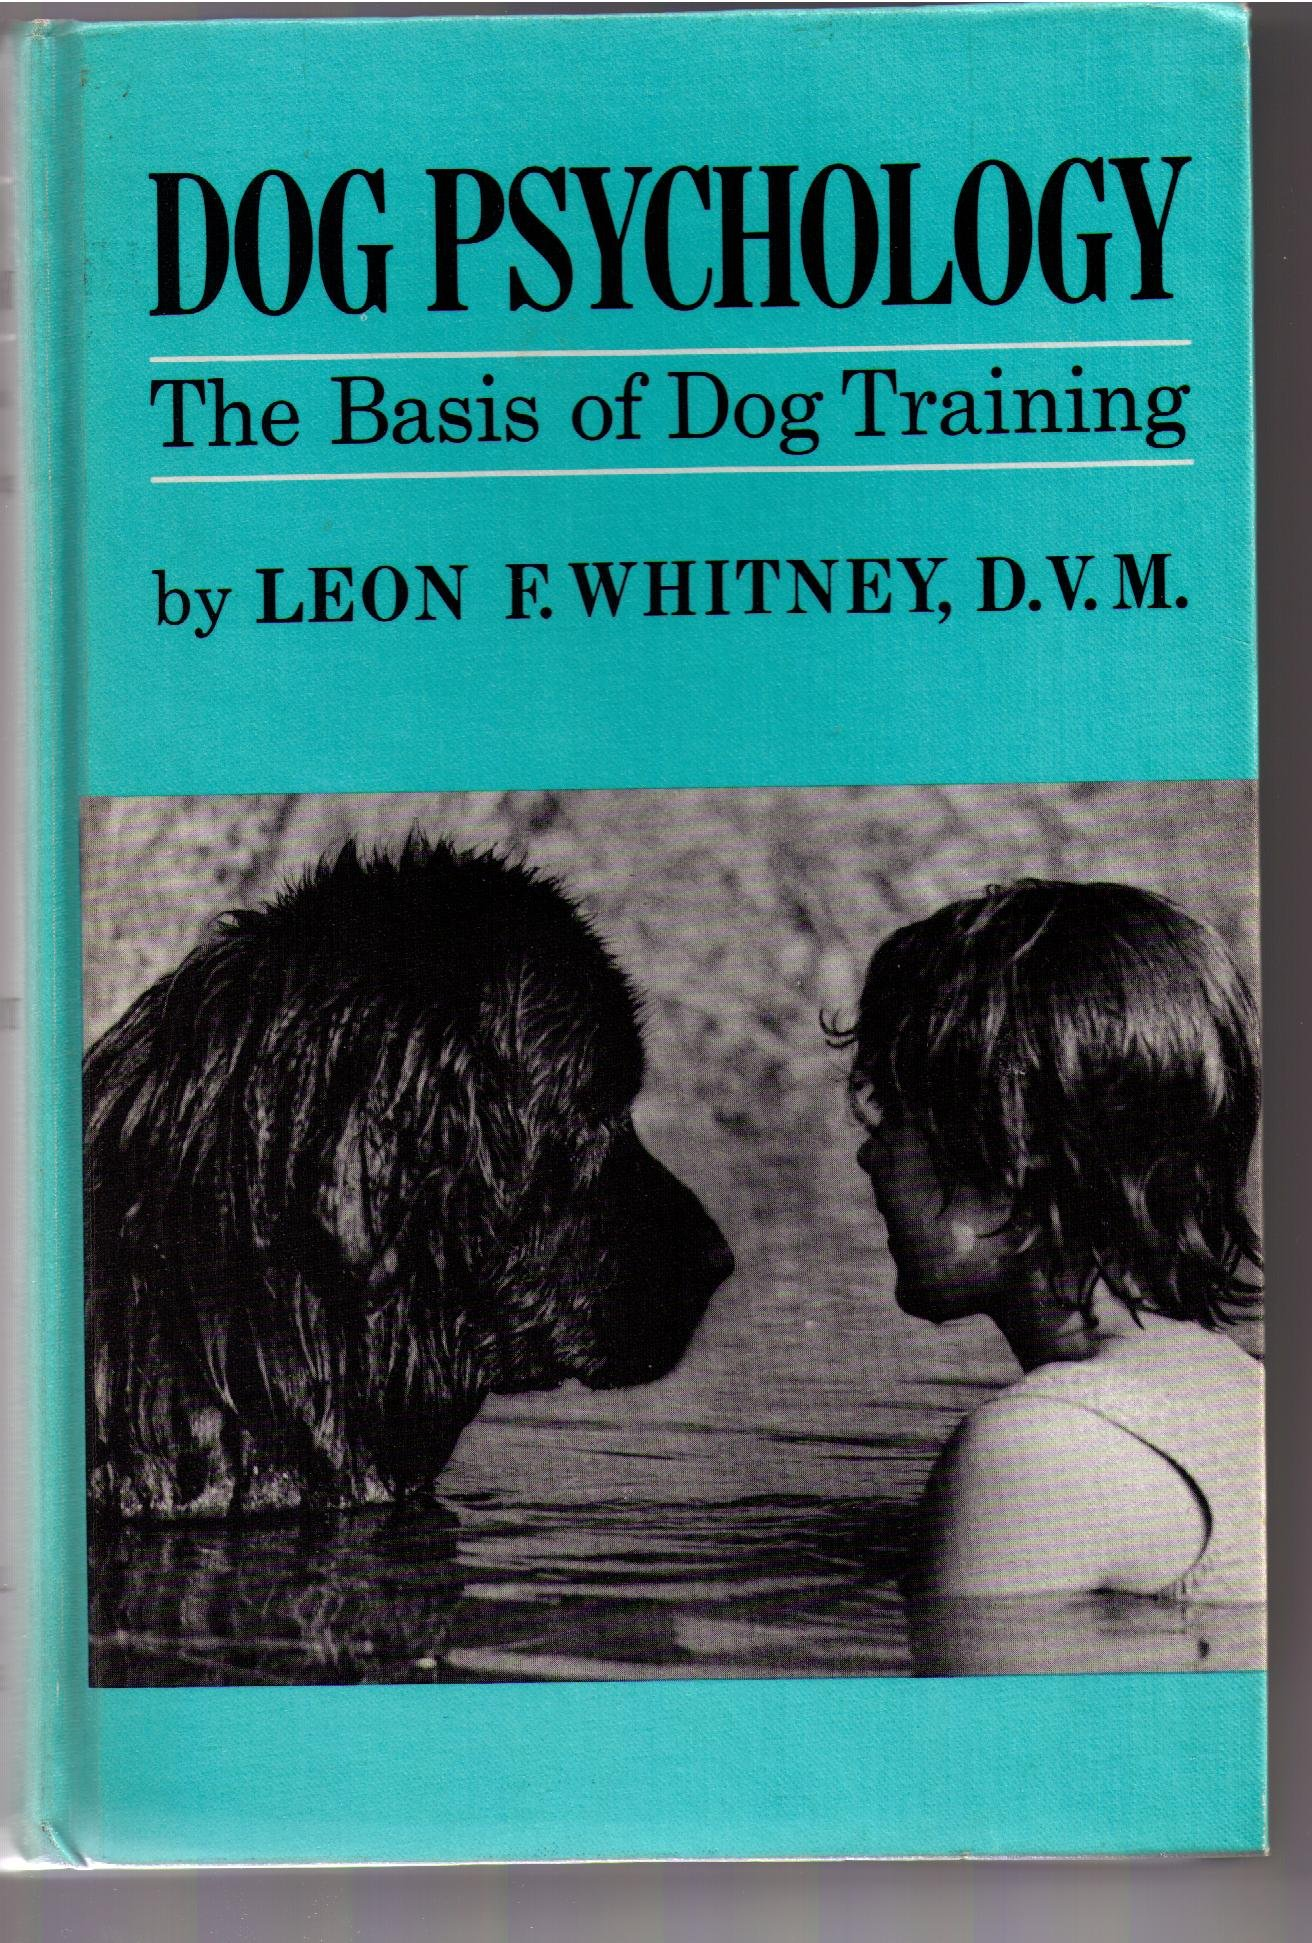 Dog Psychology; The Basis of Dog Training, by Howell Book House Inc. (Image #1)